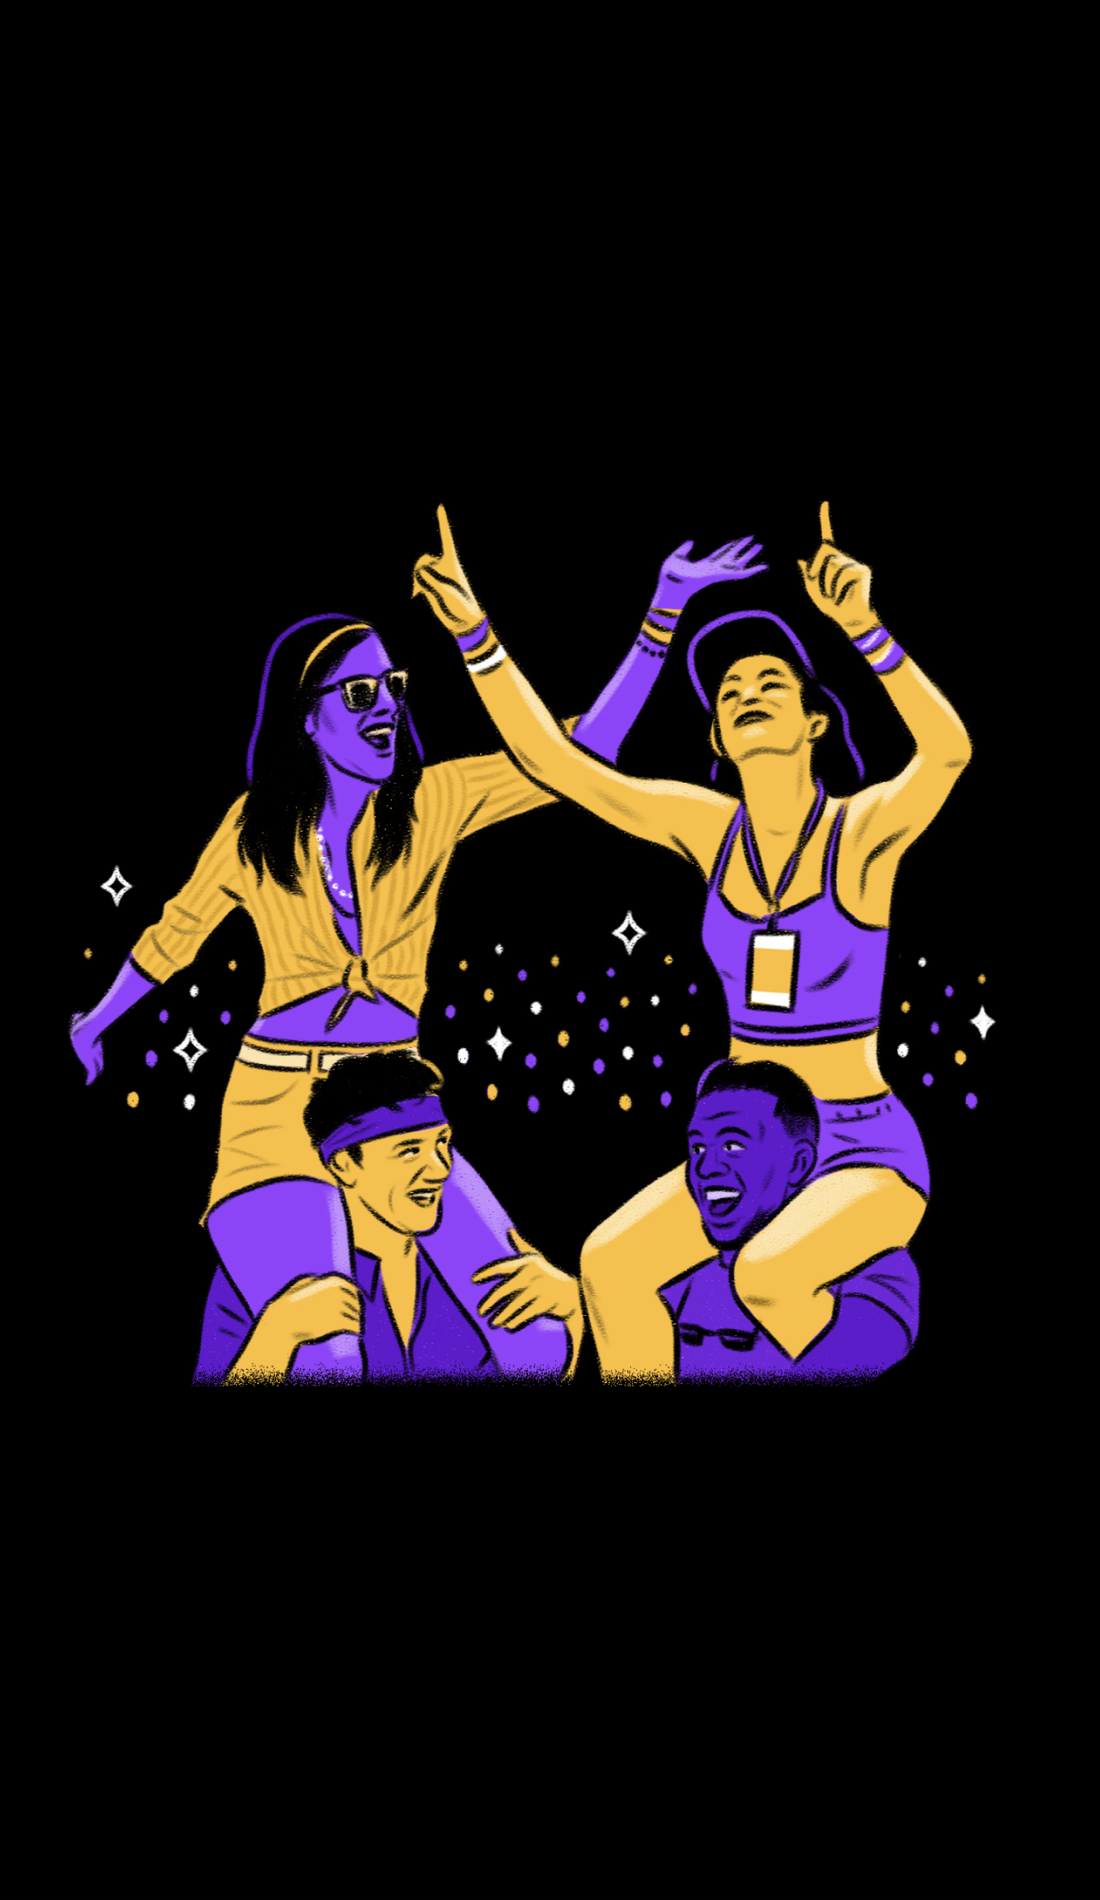 A LouFest live event